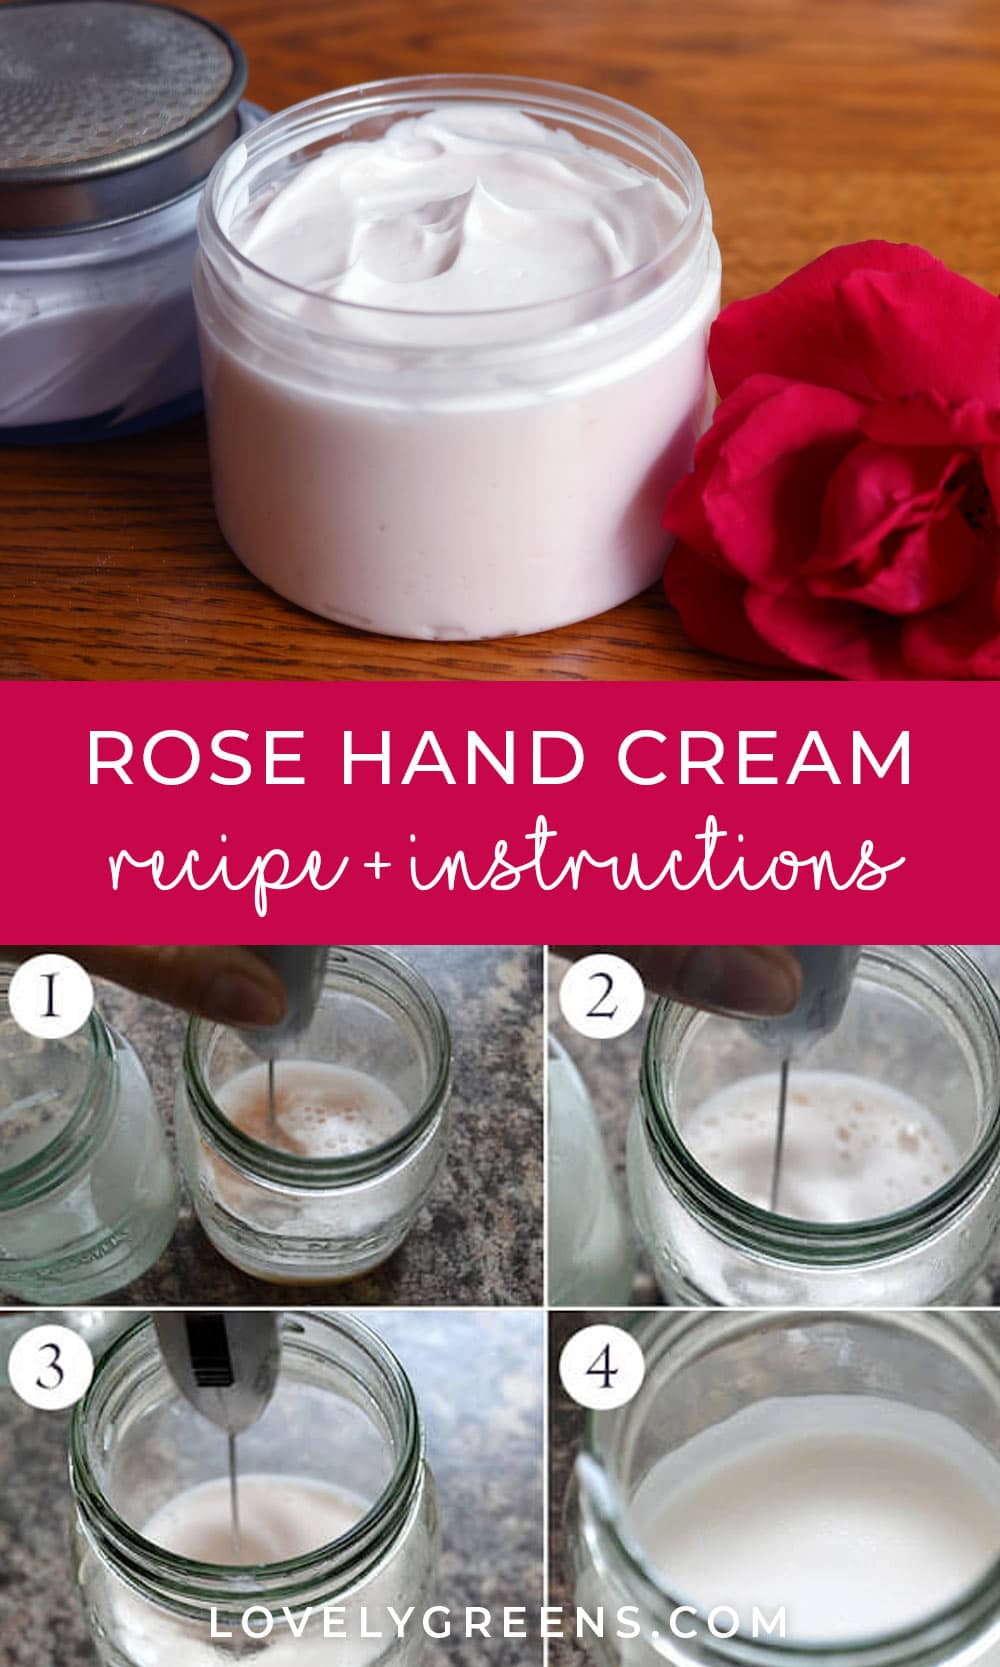 Make this rich and moisturizing handmade rose hand cream recipe using wild rose petals and raw honey. Includes step-by-step instructions and guidance on lotion ingredients #lotionrecipe #roserecipe #skincarerecipe